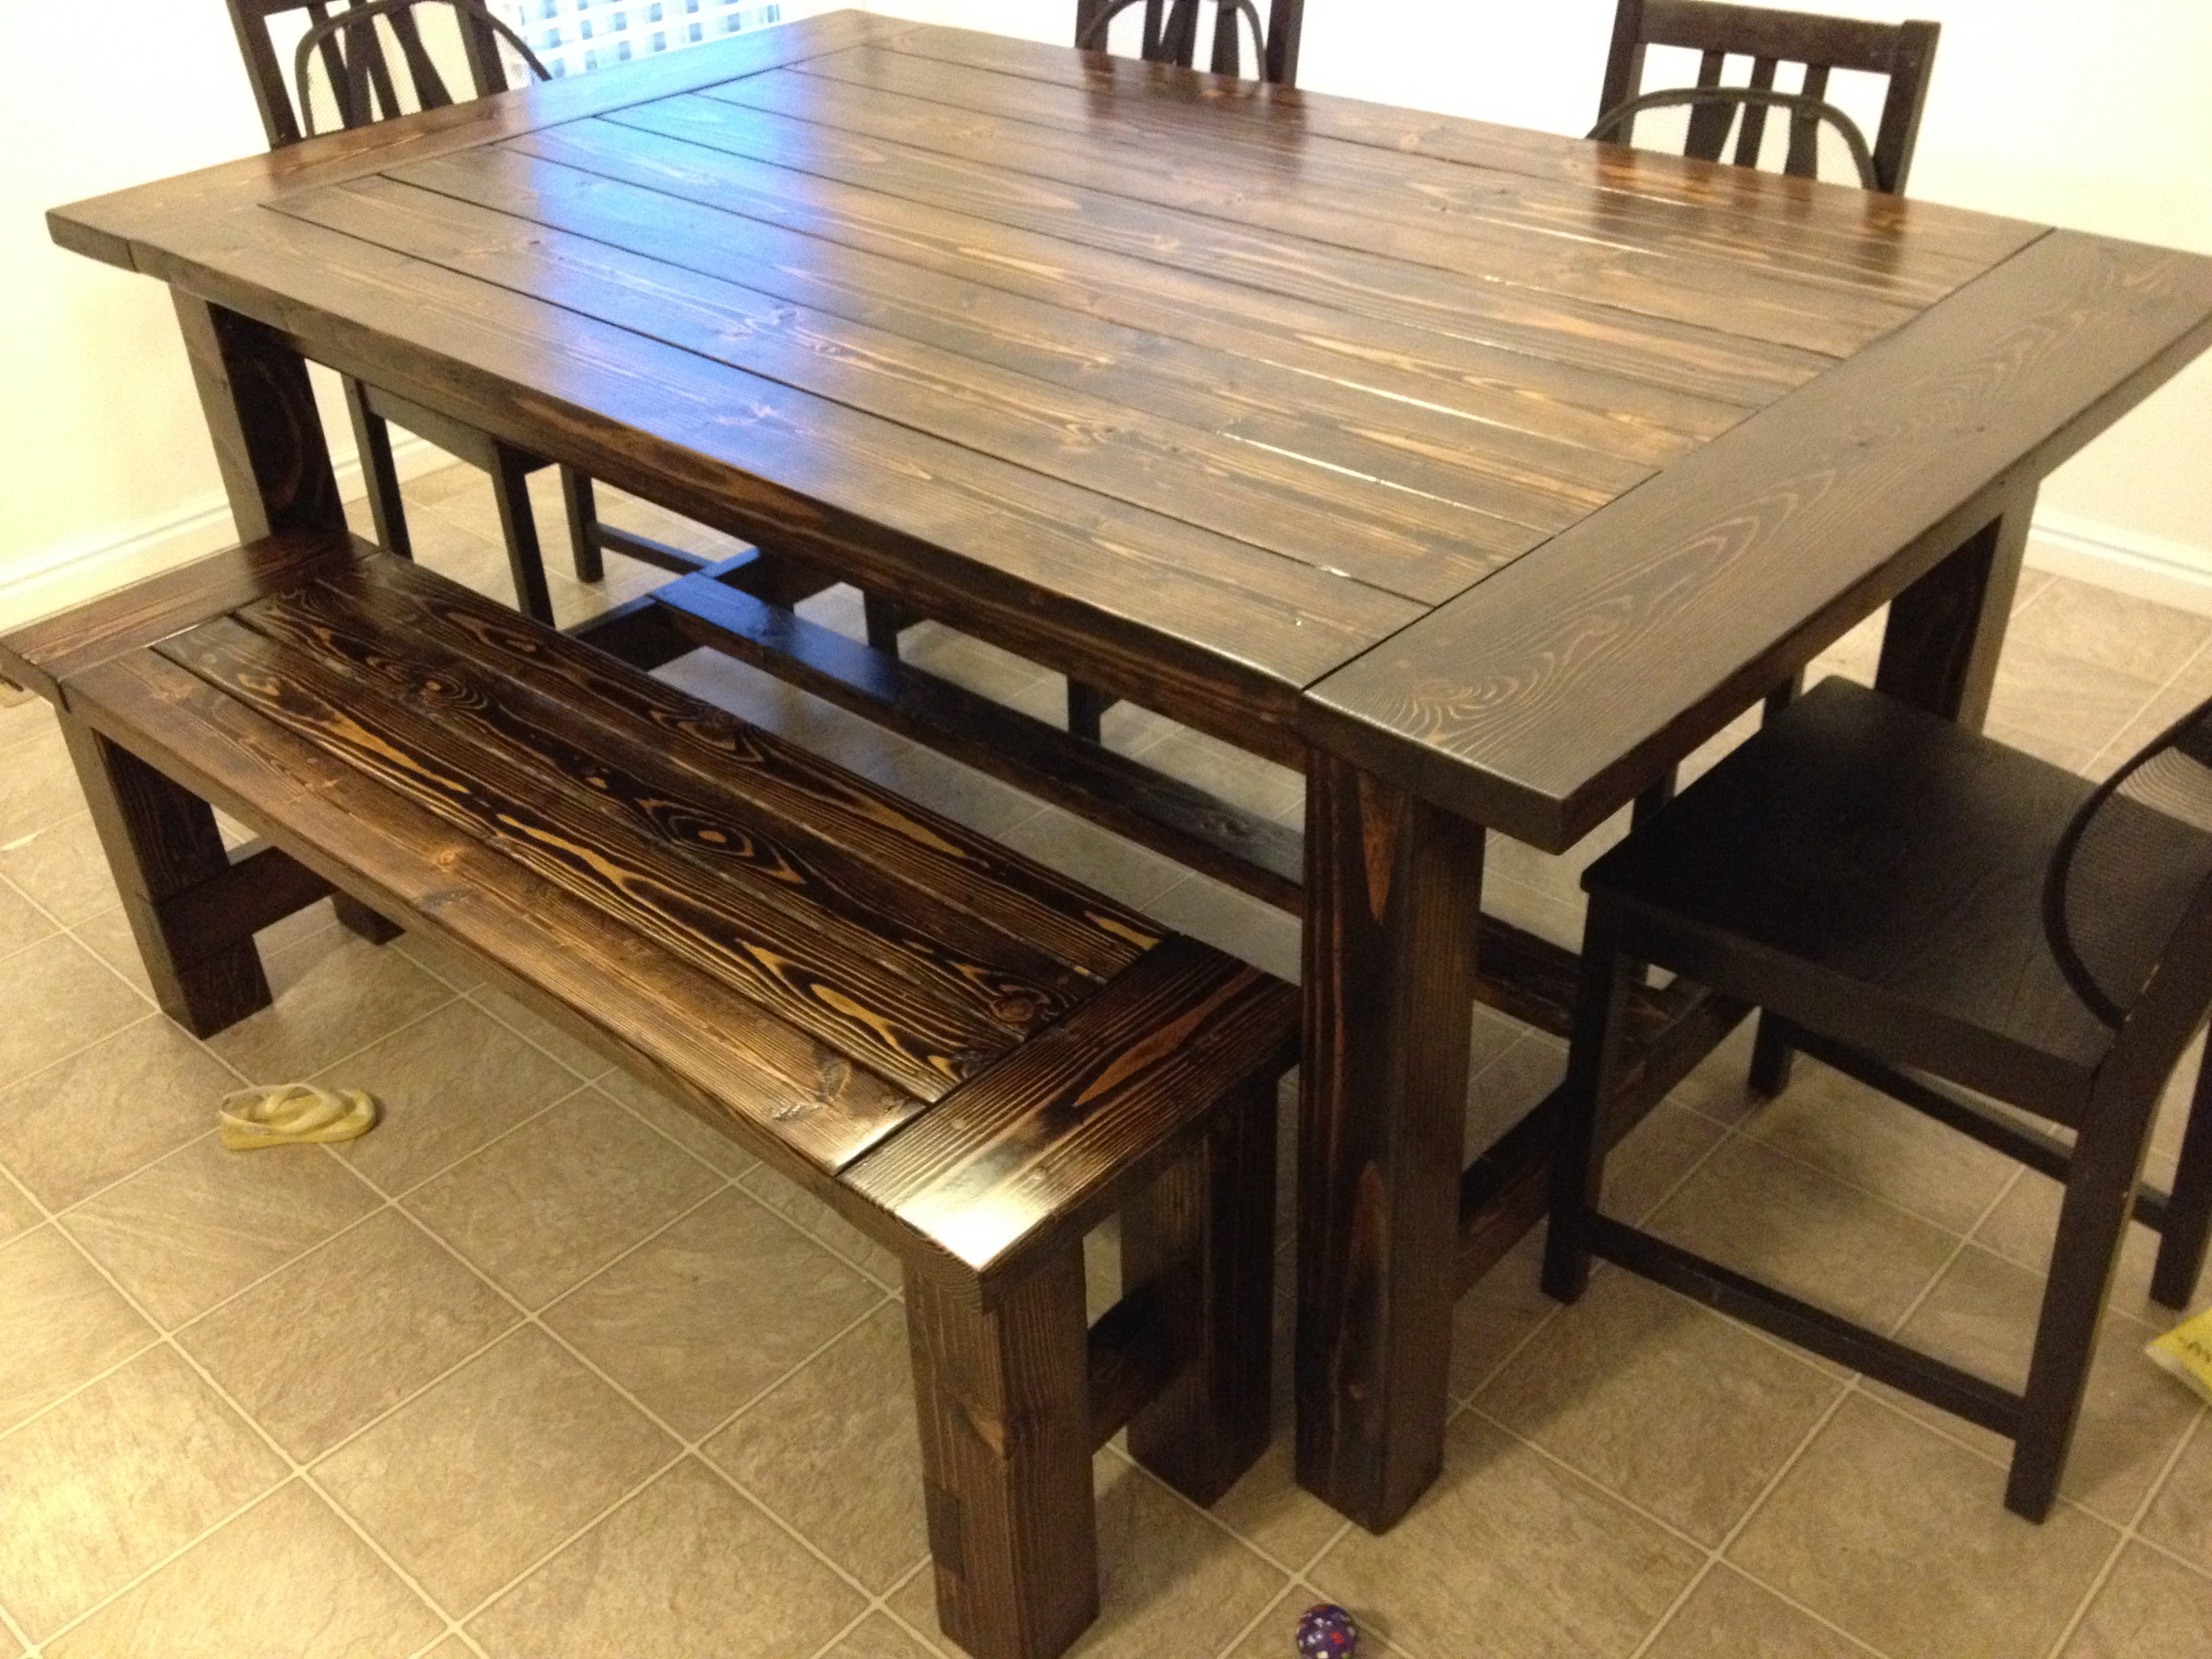 Ana white farmhouse table and bench diy projects for Kitchen table with bench